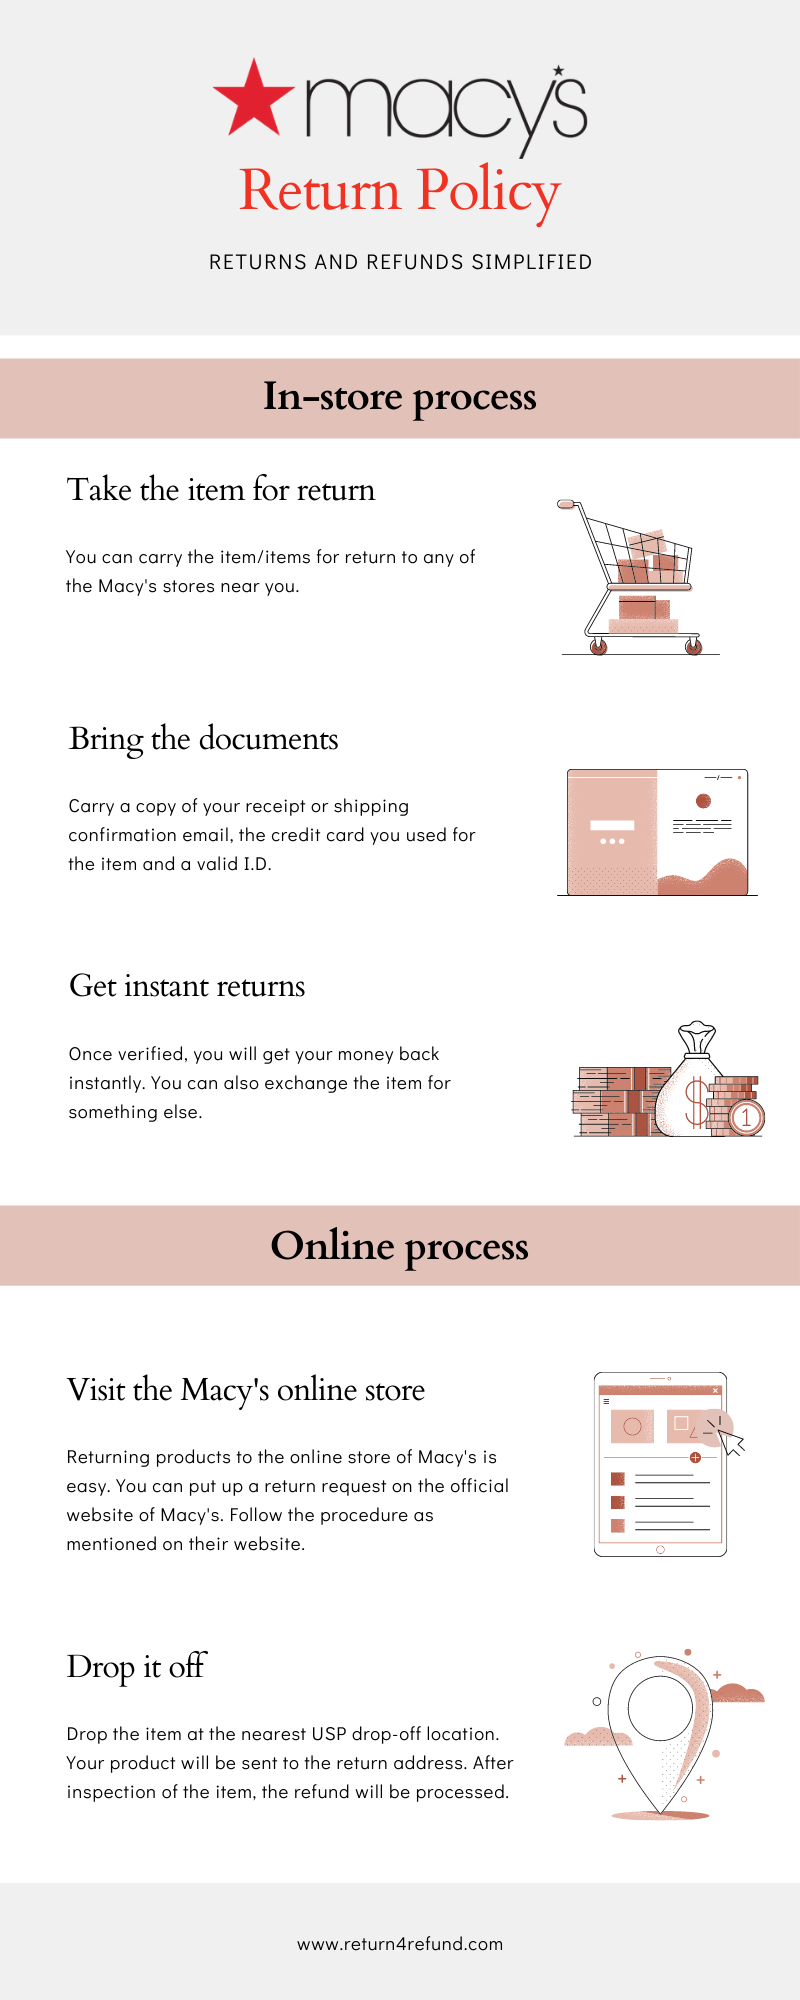 Macy's Return Policy infographic